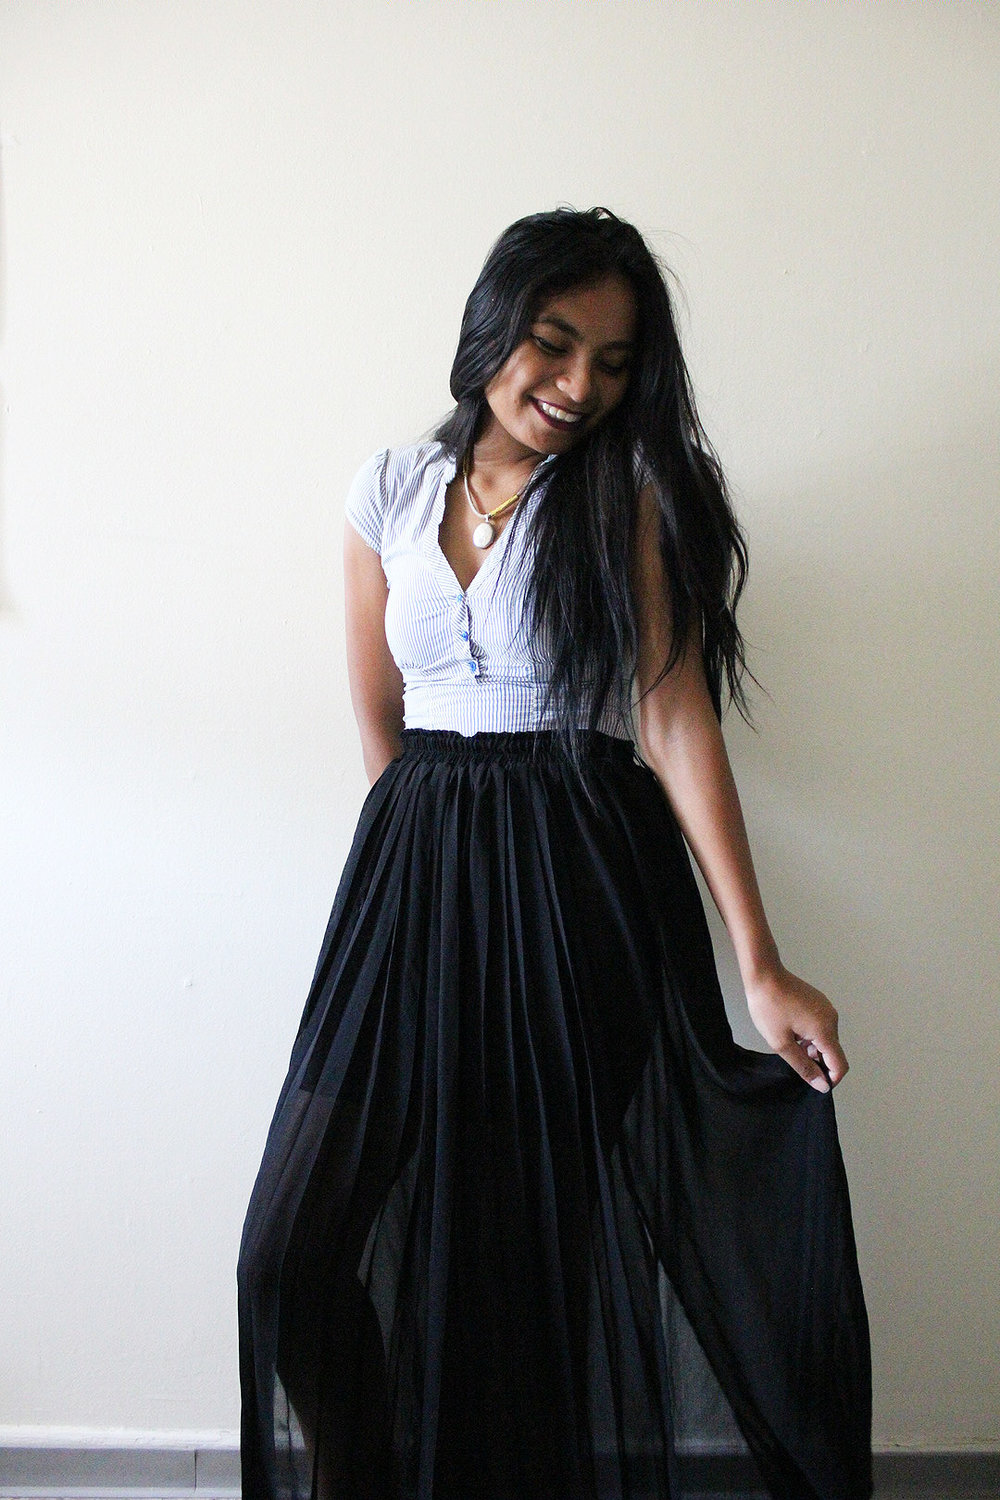 Maxi-Skirt-Button-Down-Work-Appropriate-Office-Wear-Style-Blogger-Fashionista-LINDATENCHITRAN-7-1616x1080.jpg